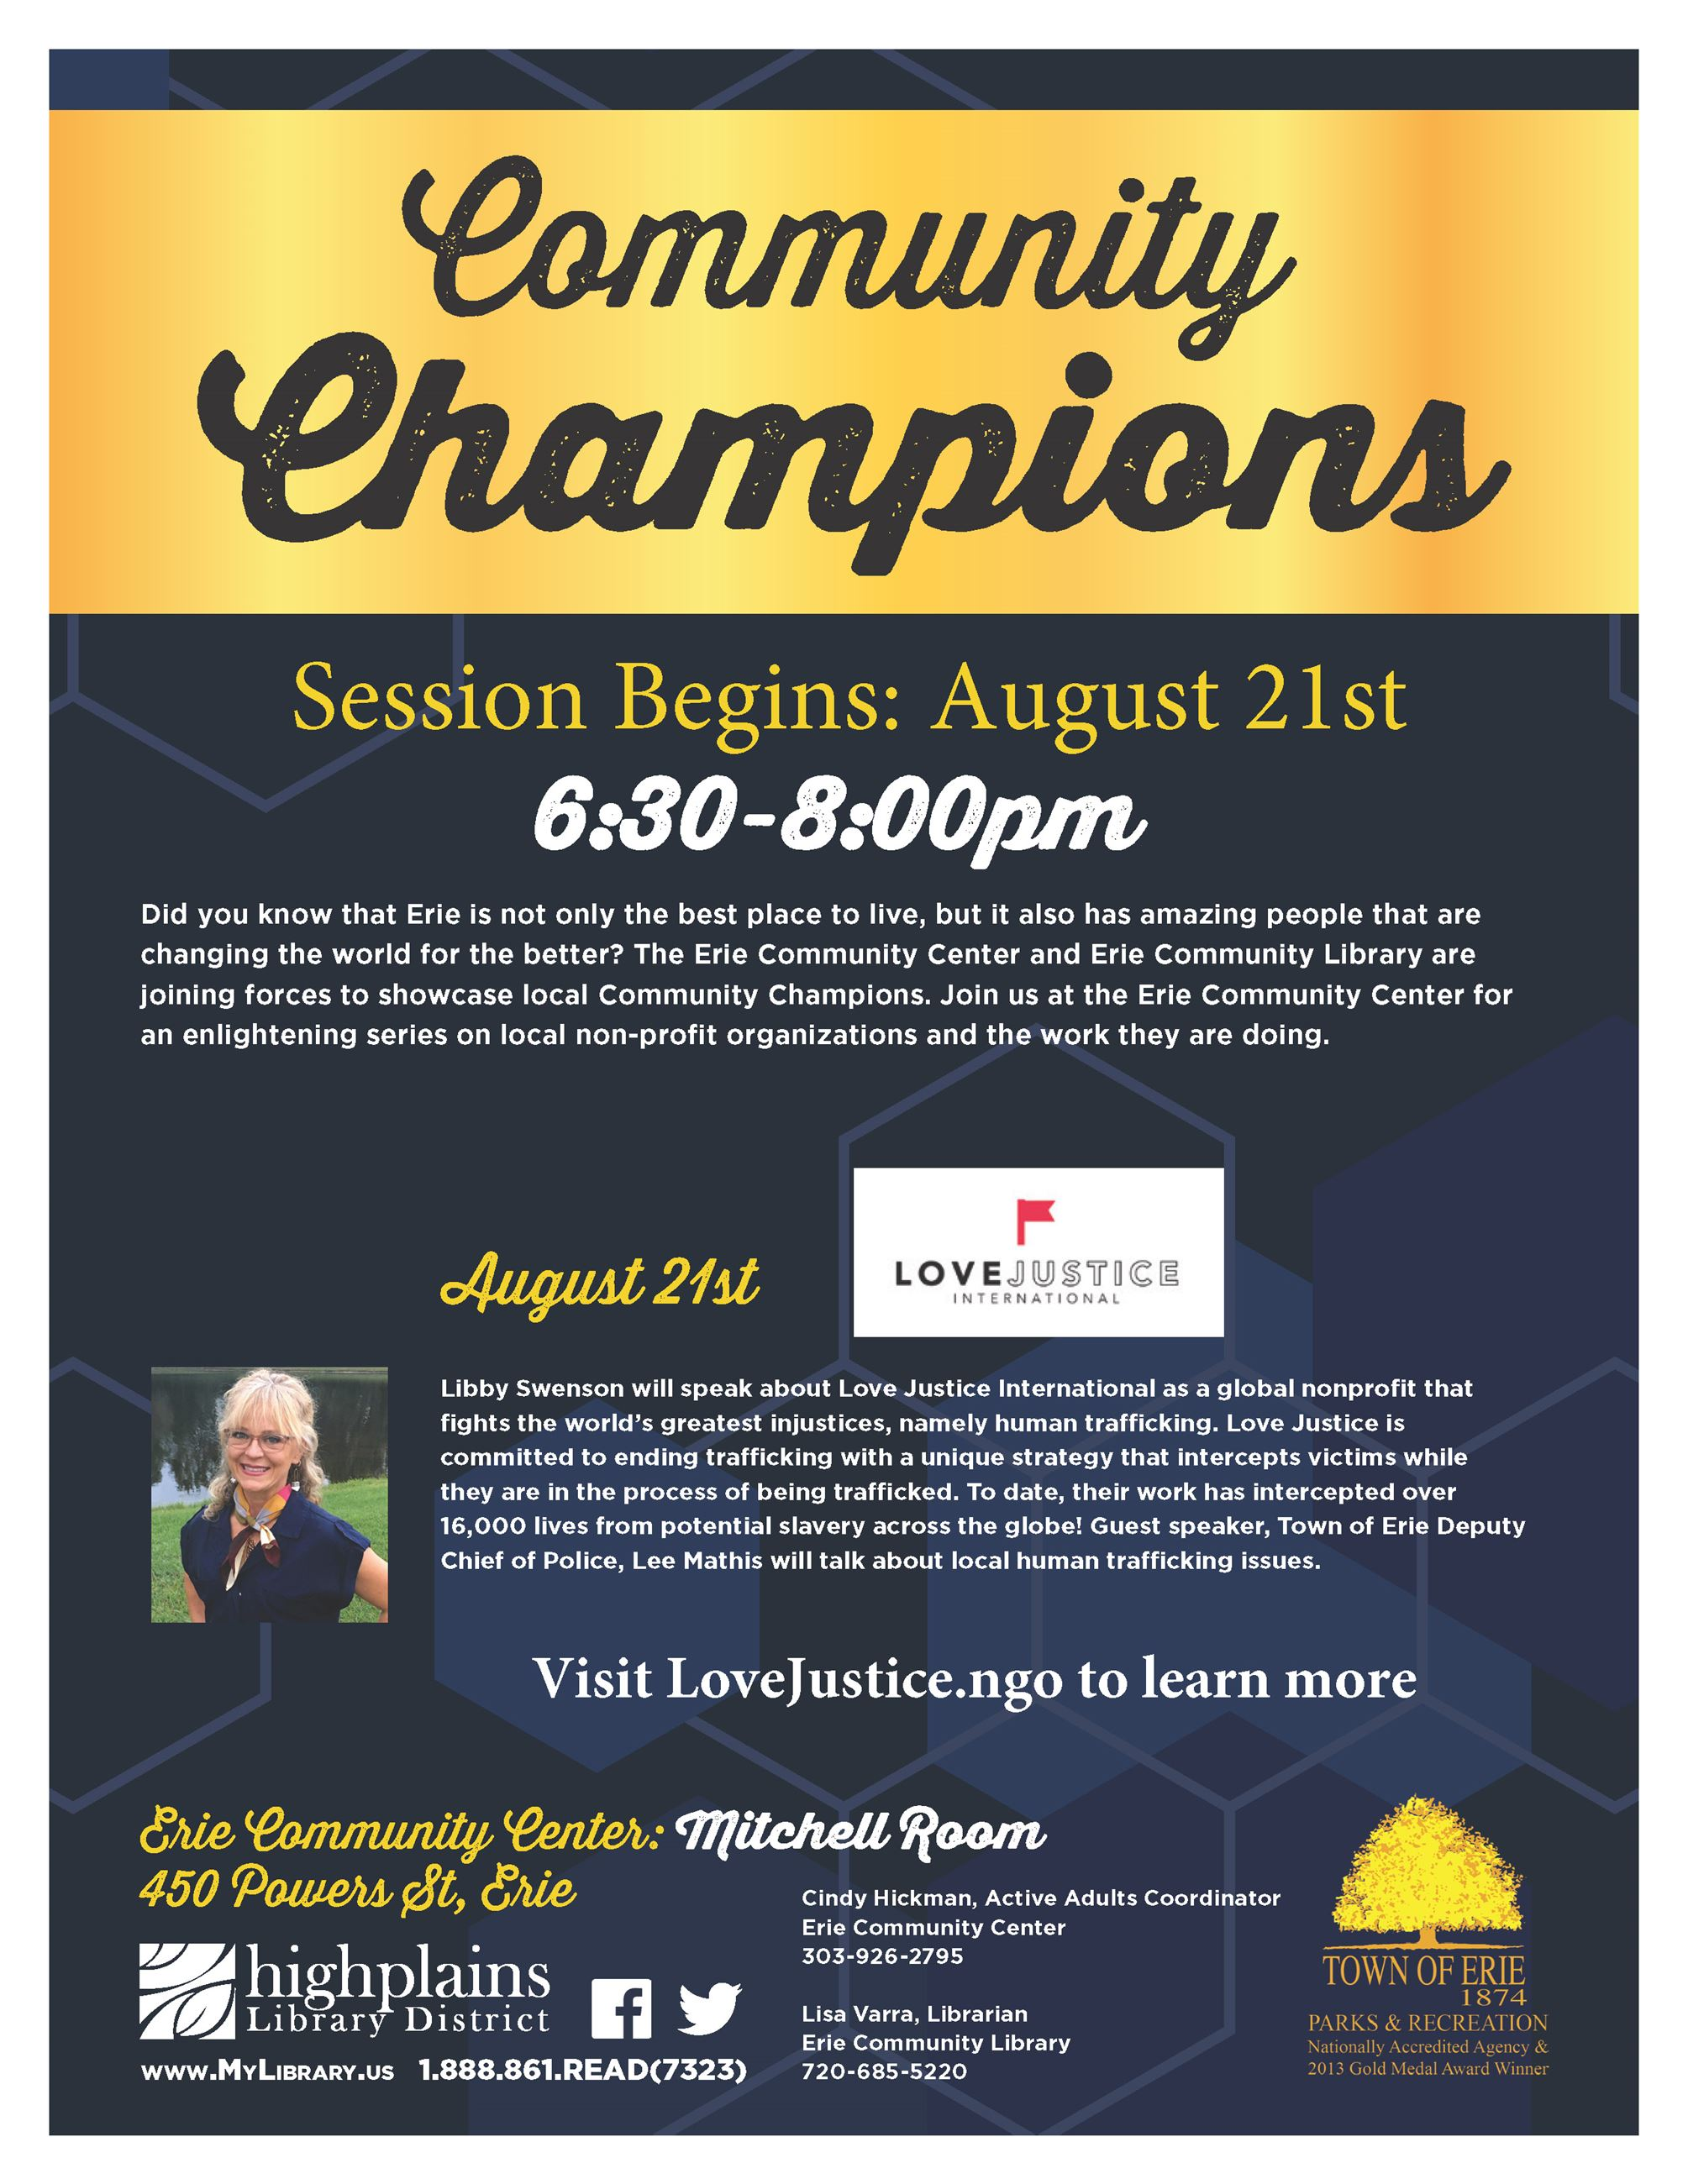 Community Champions Poster for August 21 event